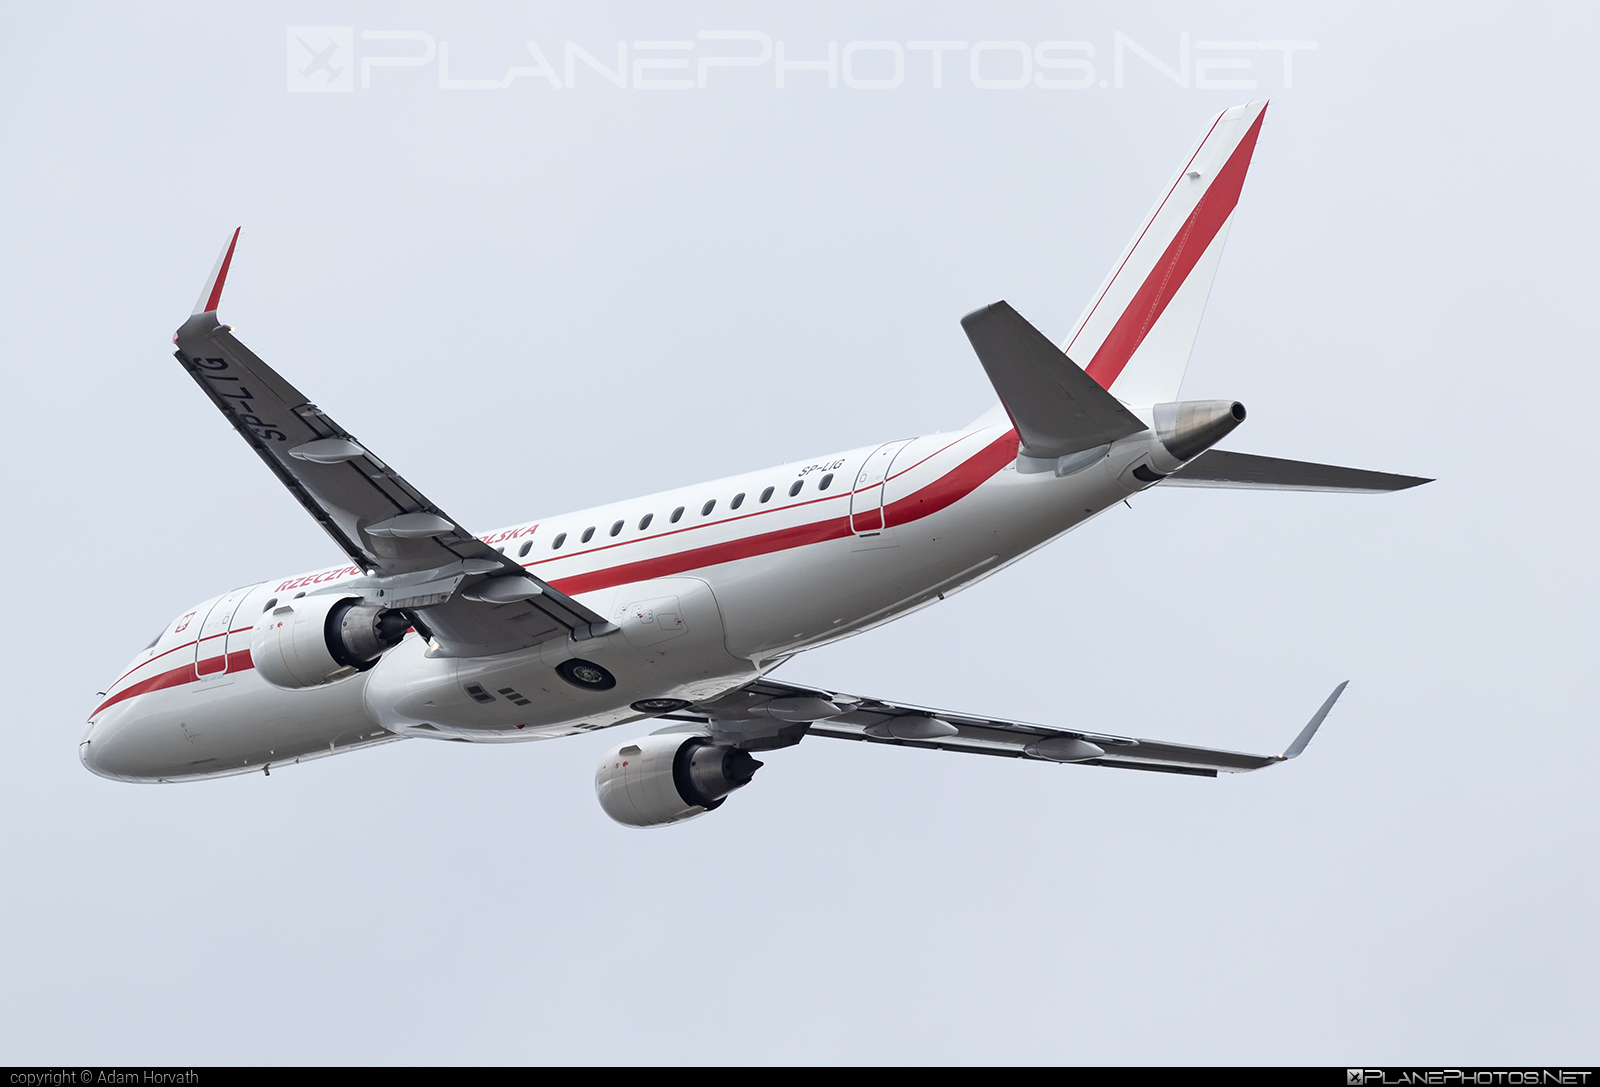 Embraer 170-200LR - SP-LIG operated by Poland - Government #embraer